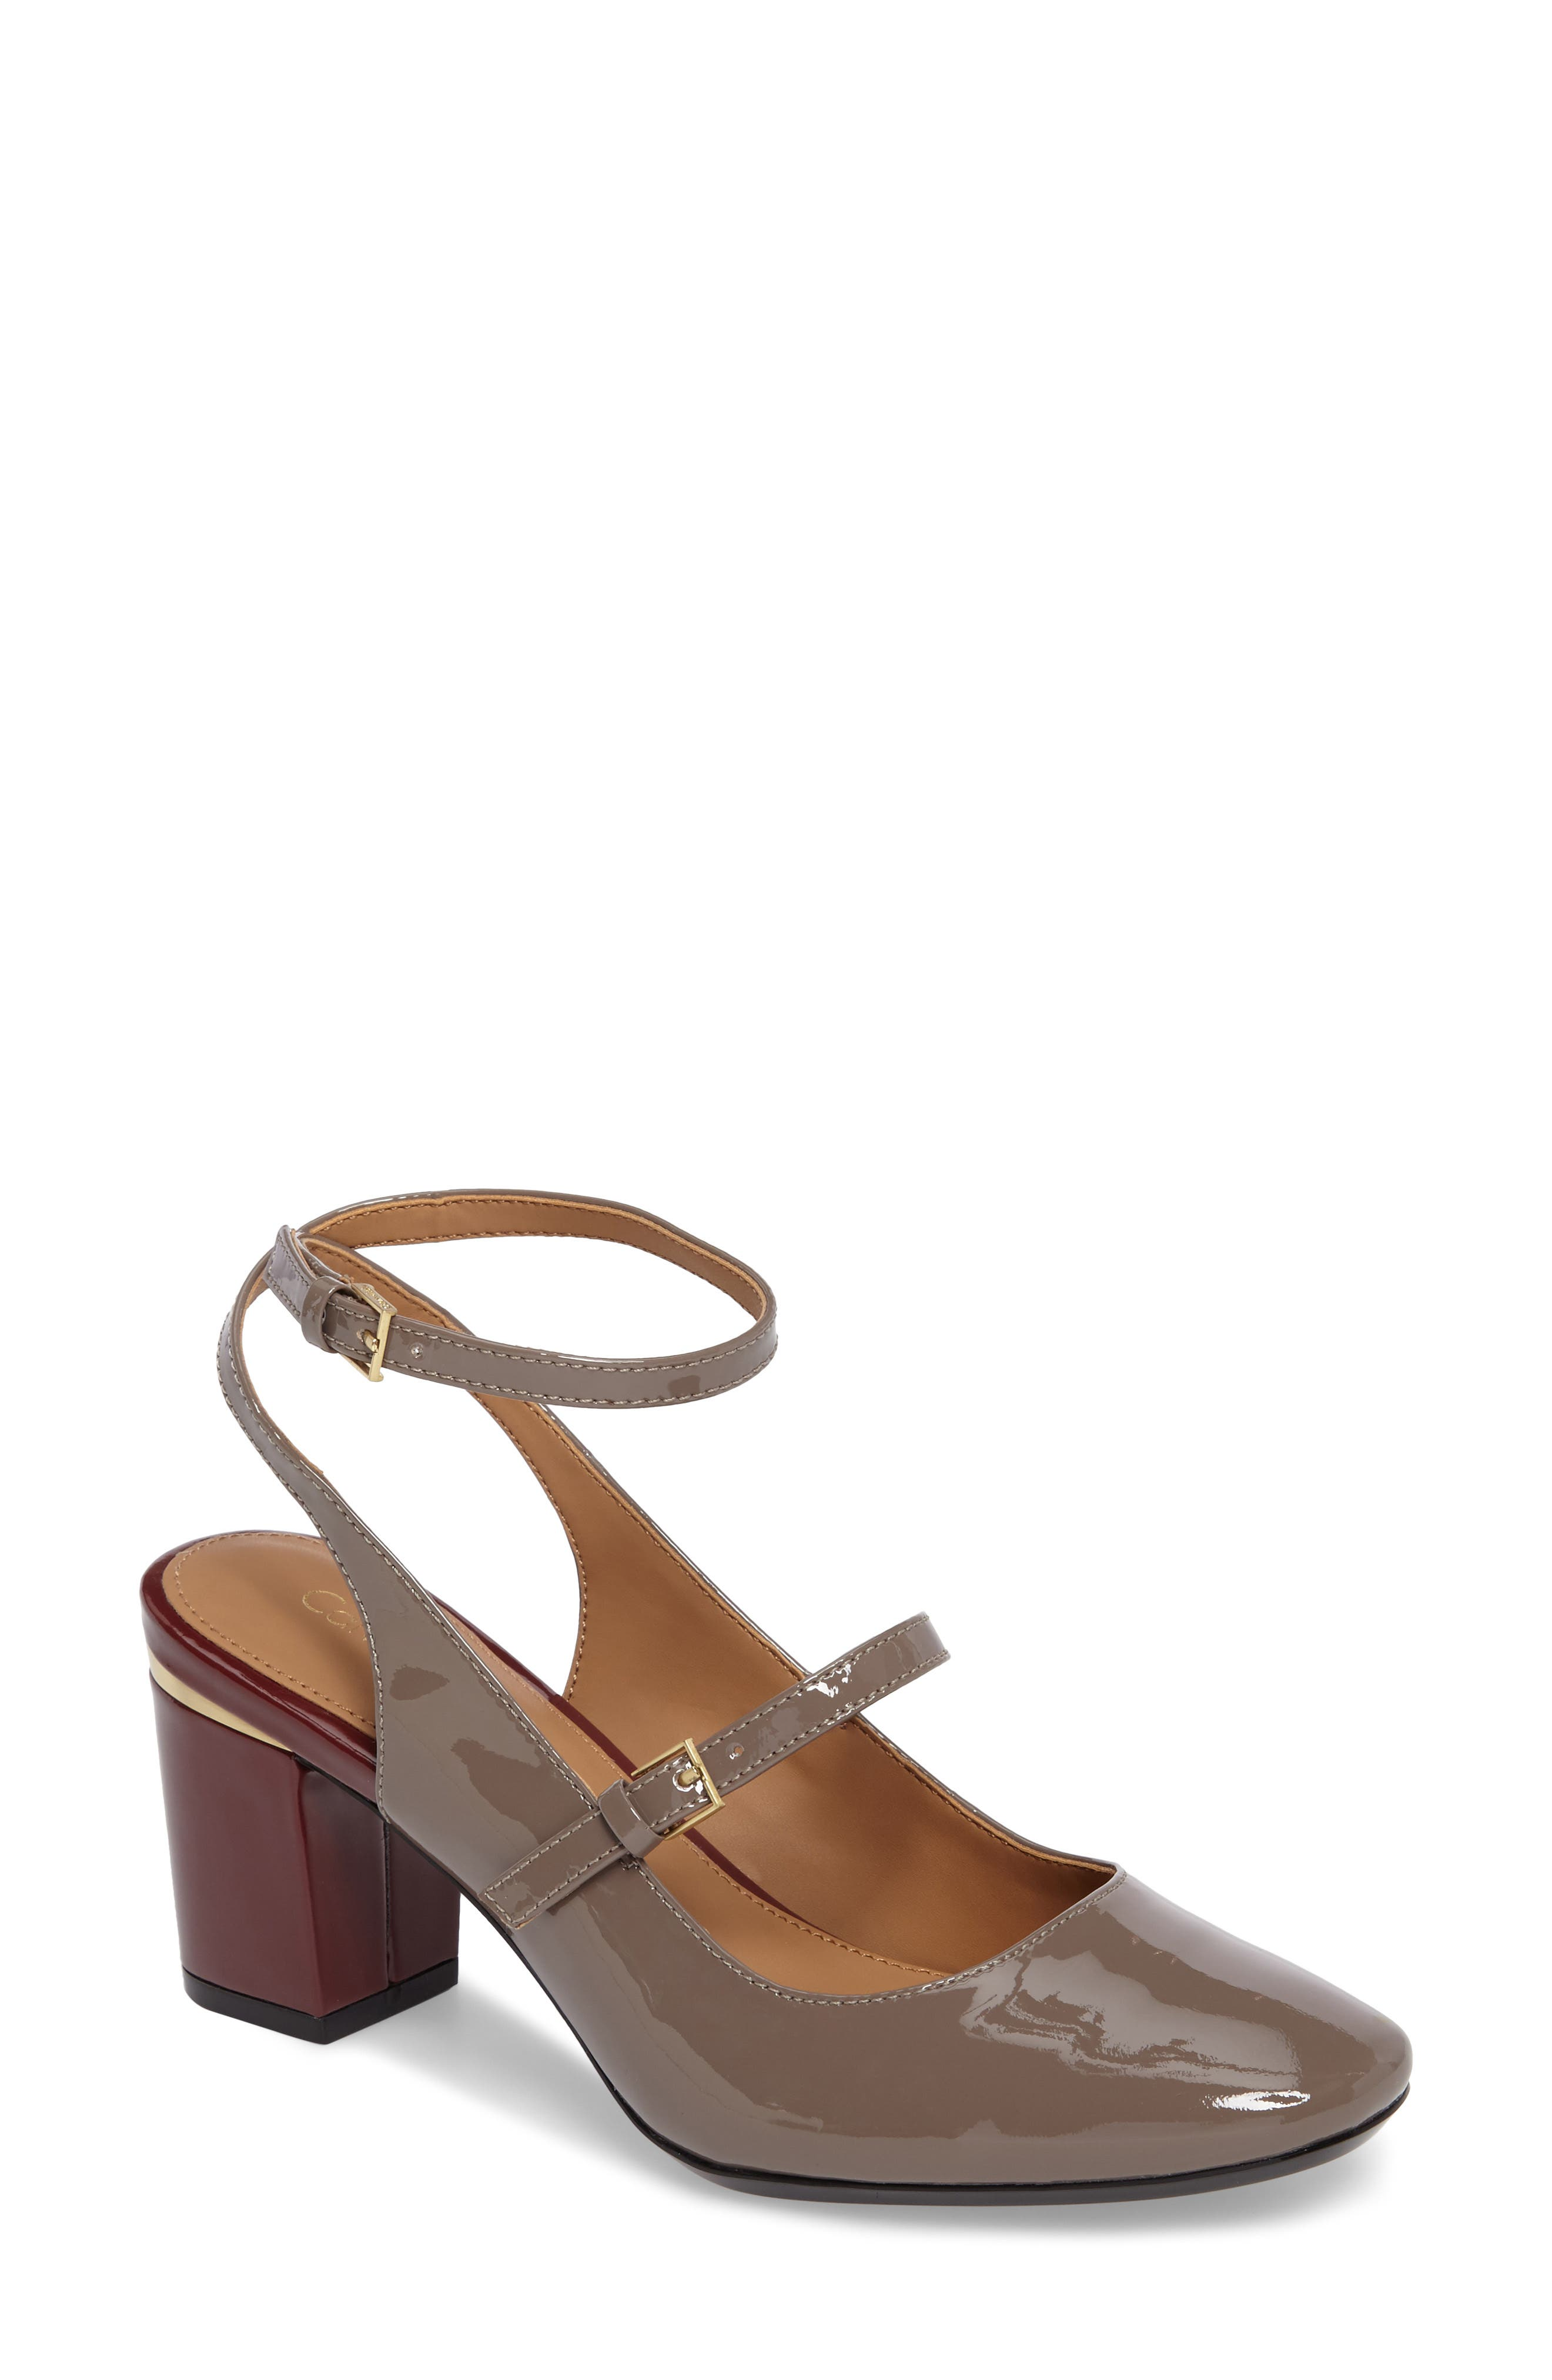 Cleary Wraparound Mary Jane Pump,                         Main,                         color, Winter Taupe